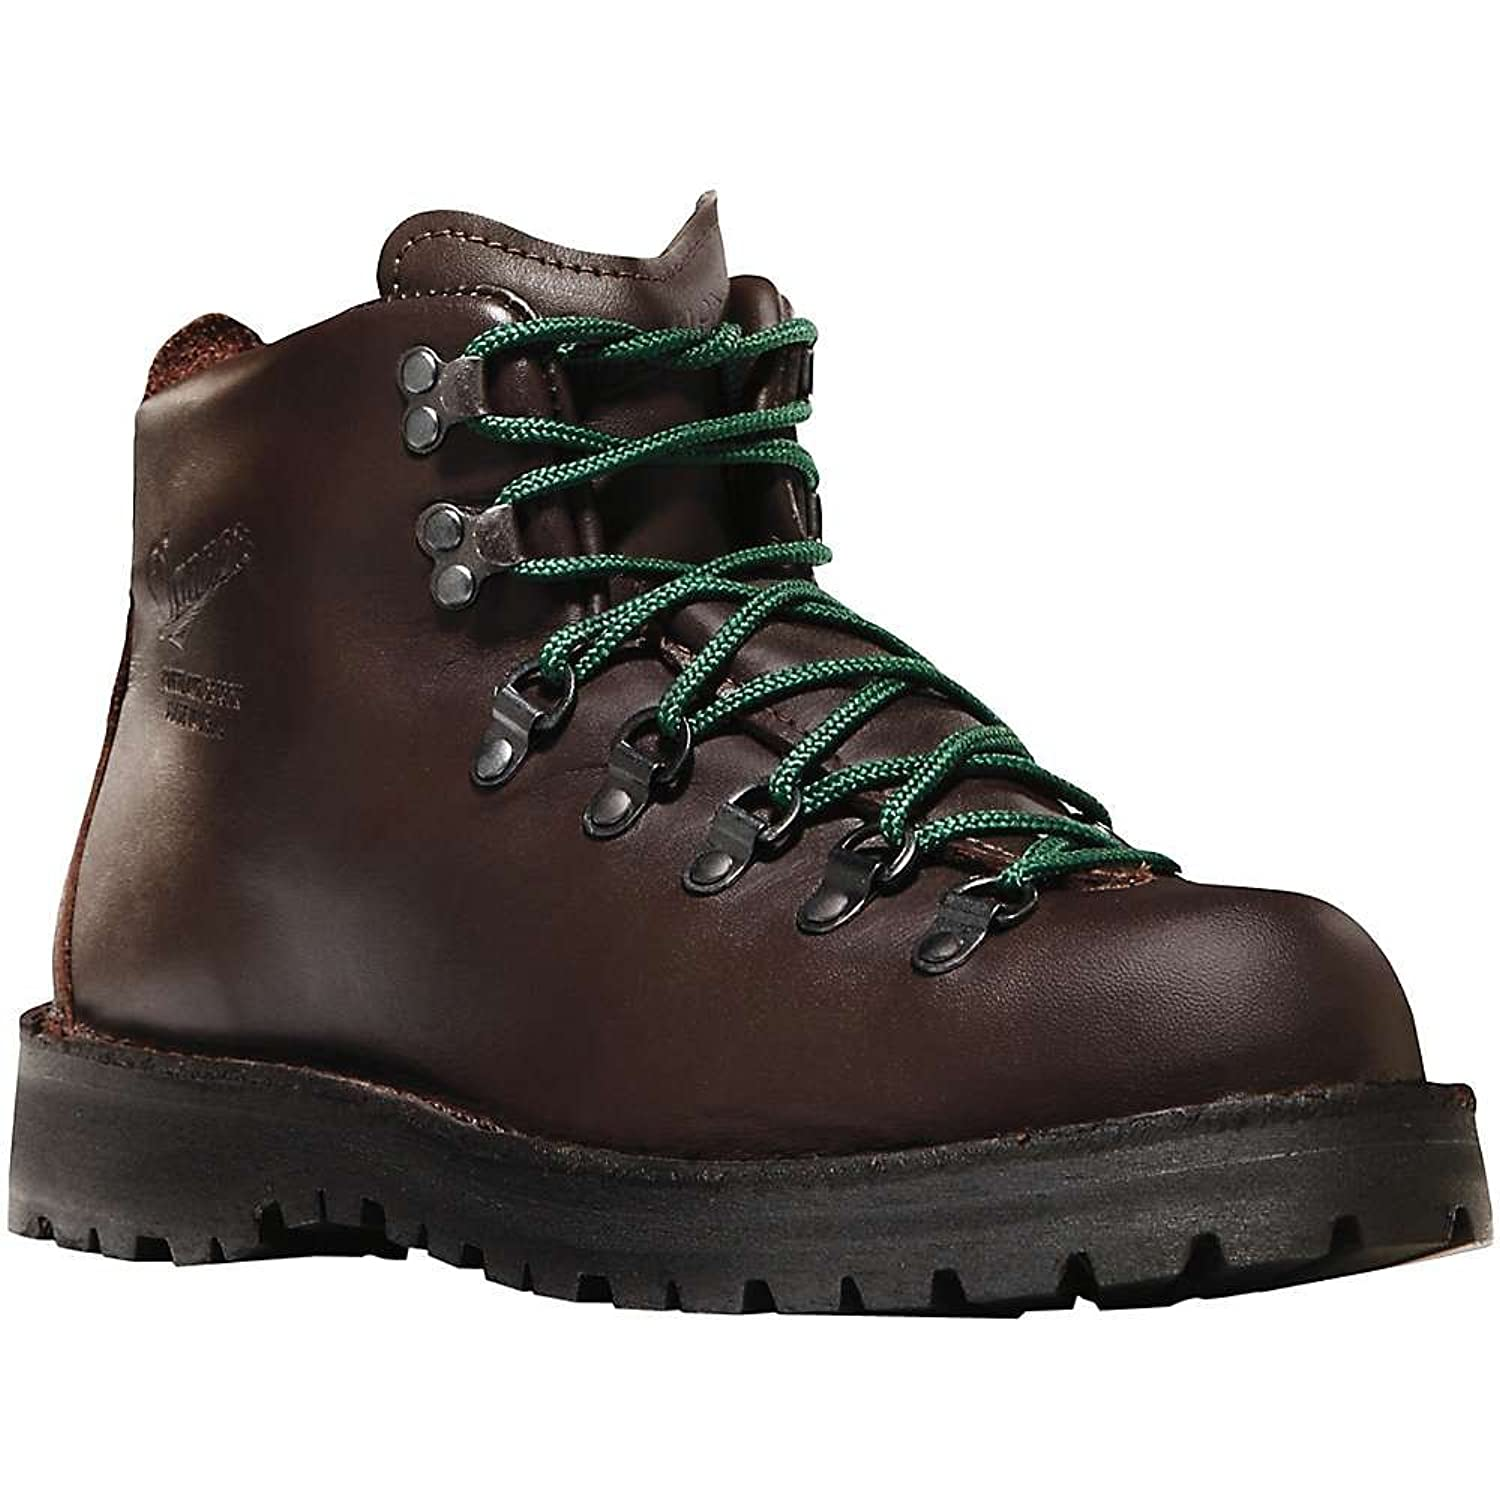 Danner Mountain Light II 5IN GTX Boot Brown 12 D